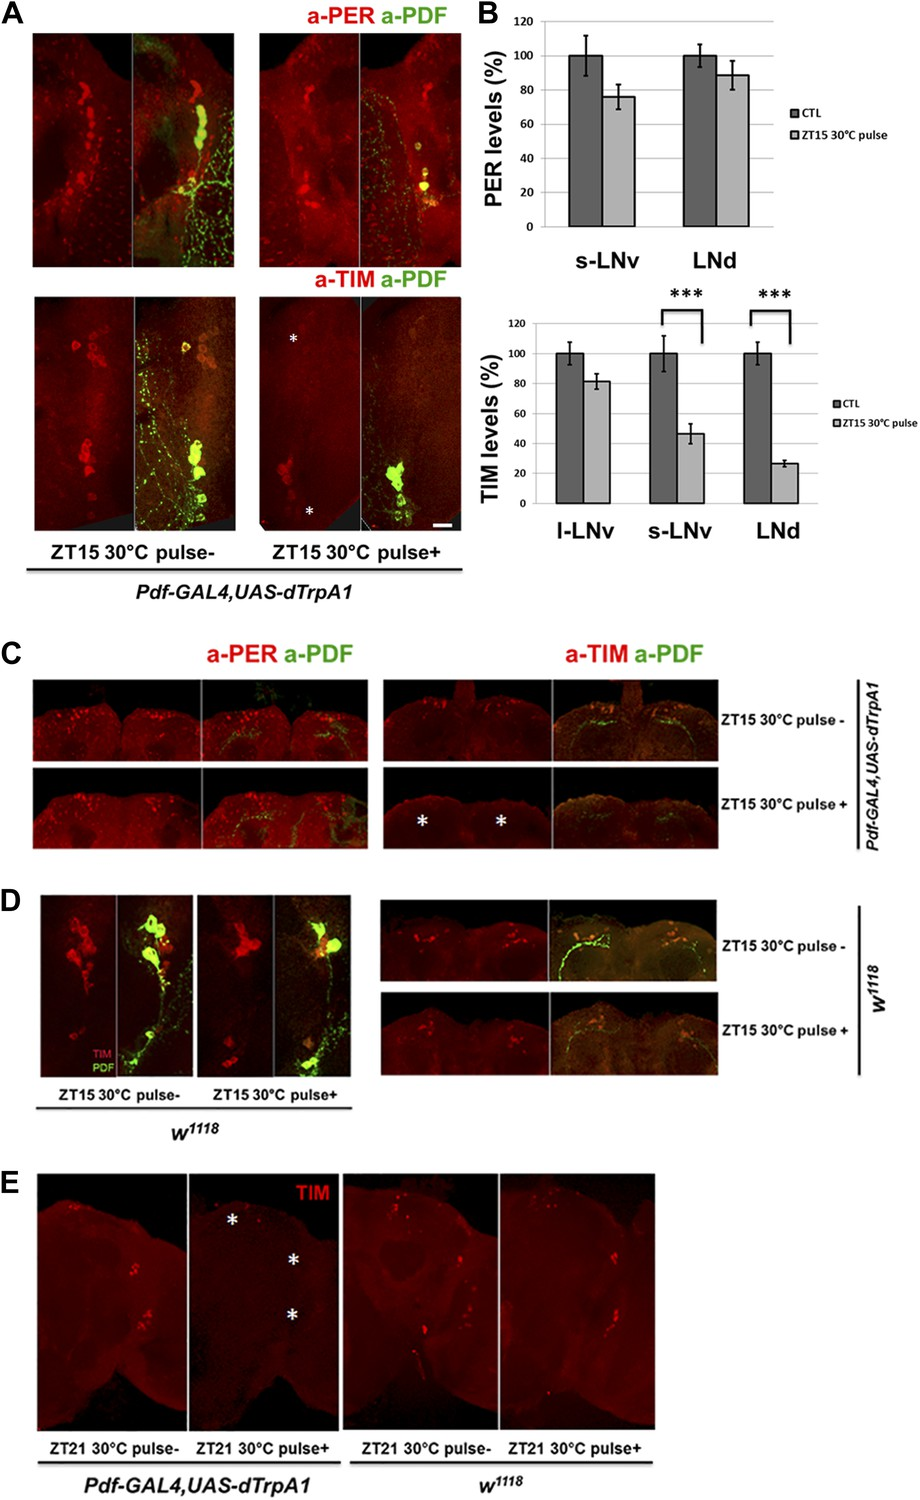 Pdf Neuron Firing Phase Shifts Key Circadian Activity Neurons In Led Driver 6 Channels With Shift Control Tim But Not Per Downstream Responds To M Cell